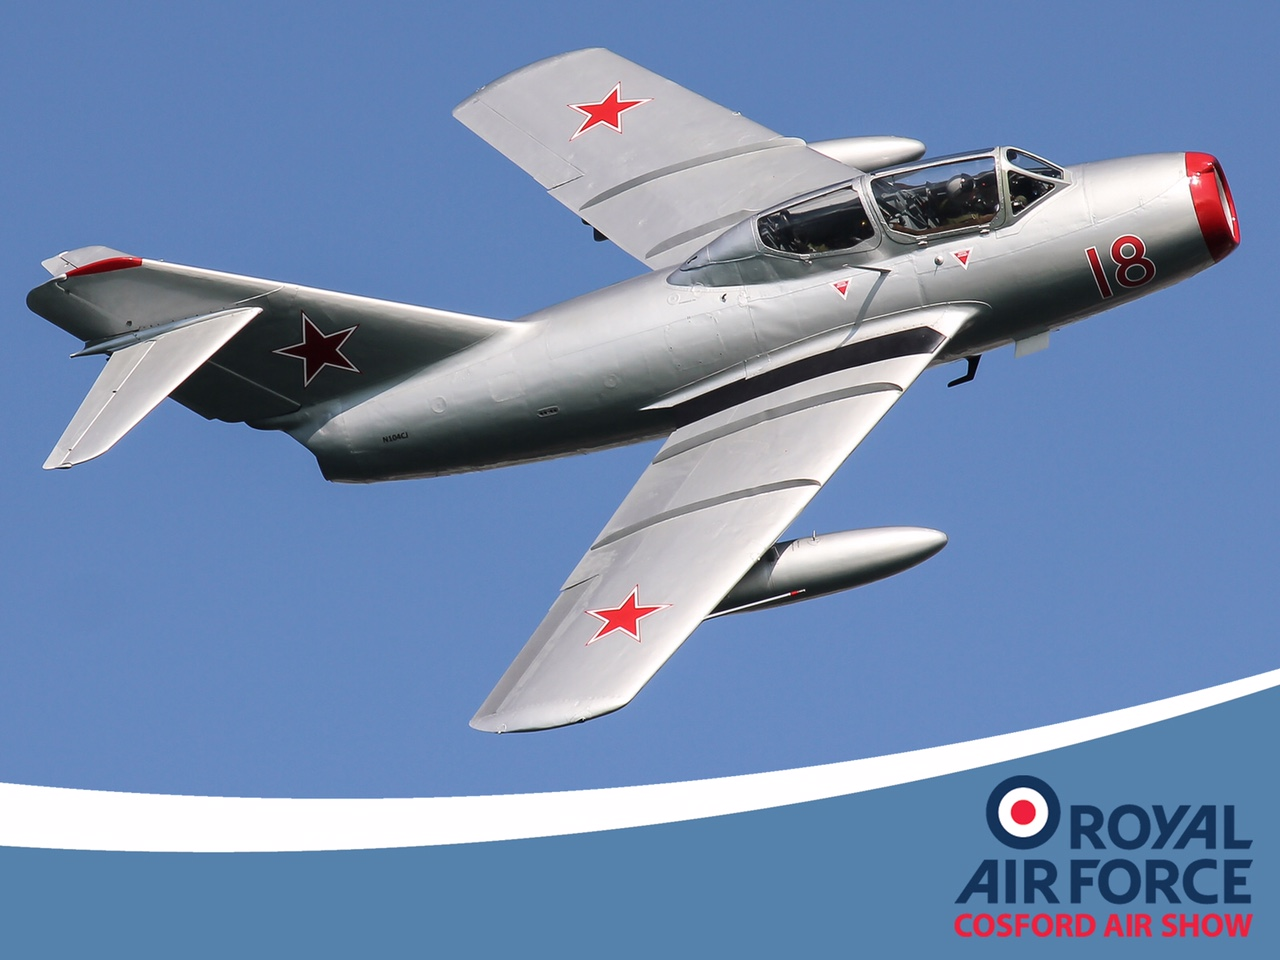 AIRSHOW NEWS: Classic Jet showcase at RAF Cosford Air Show